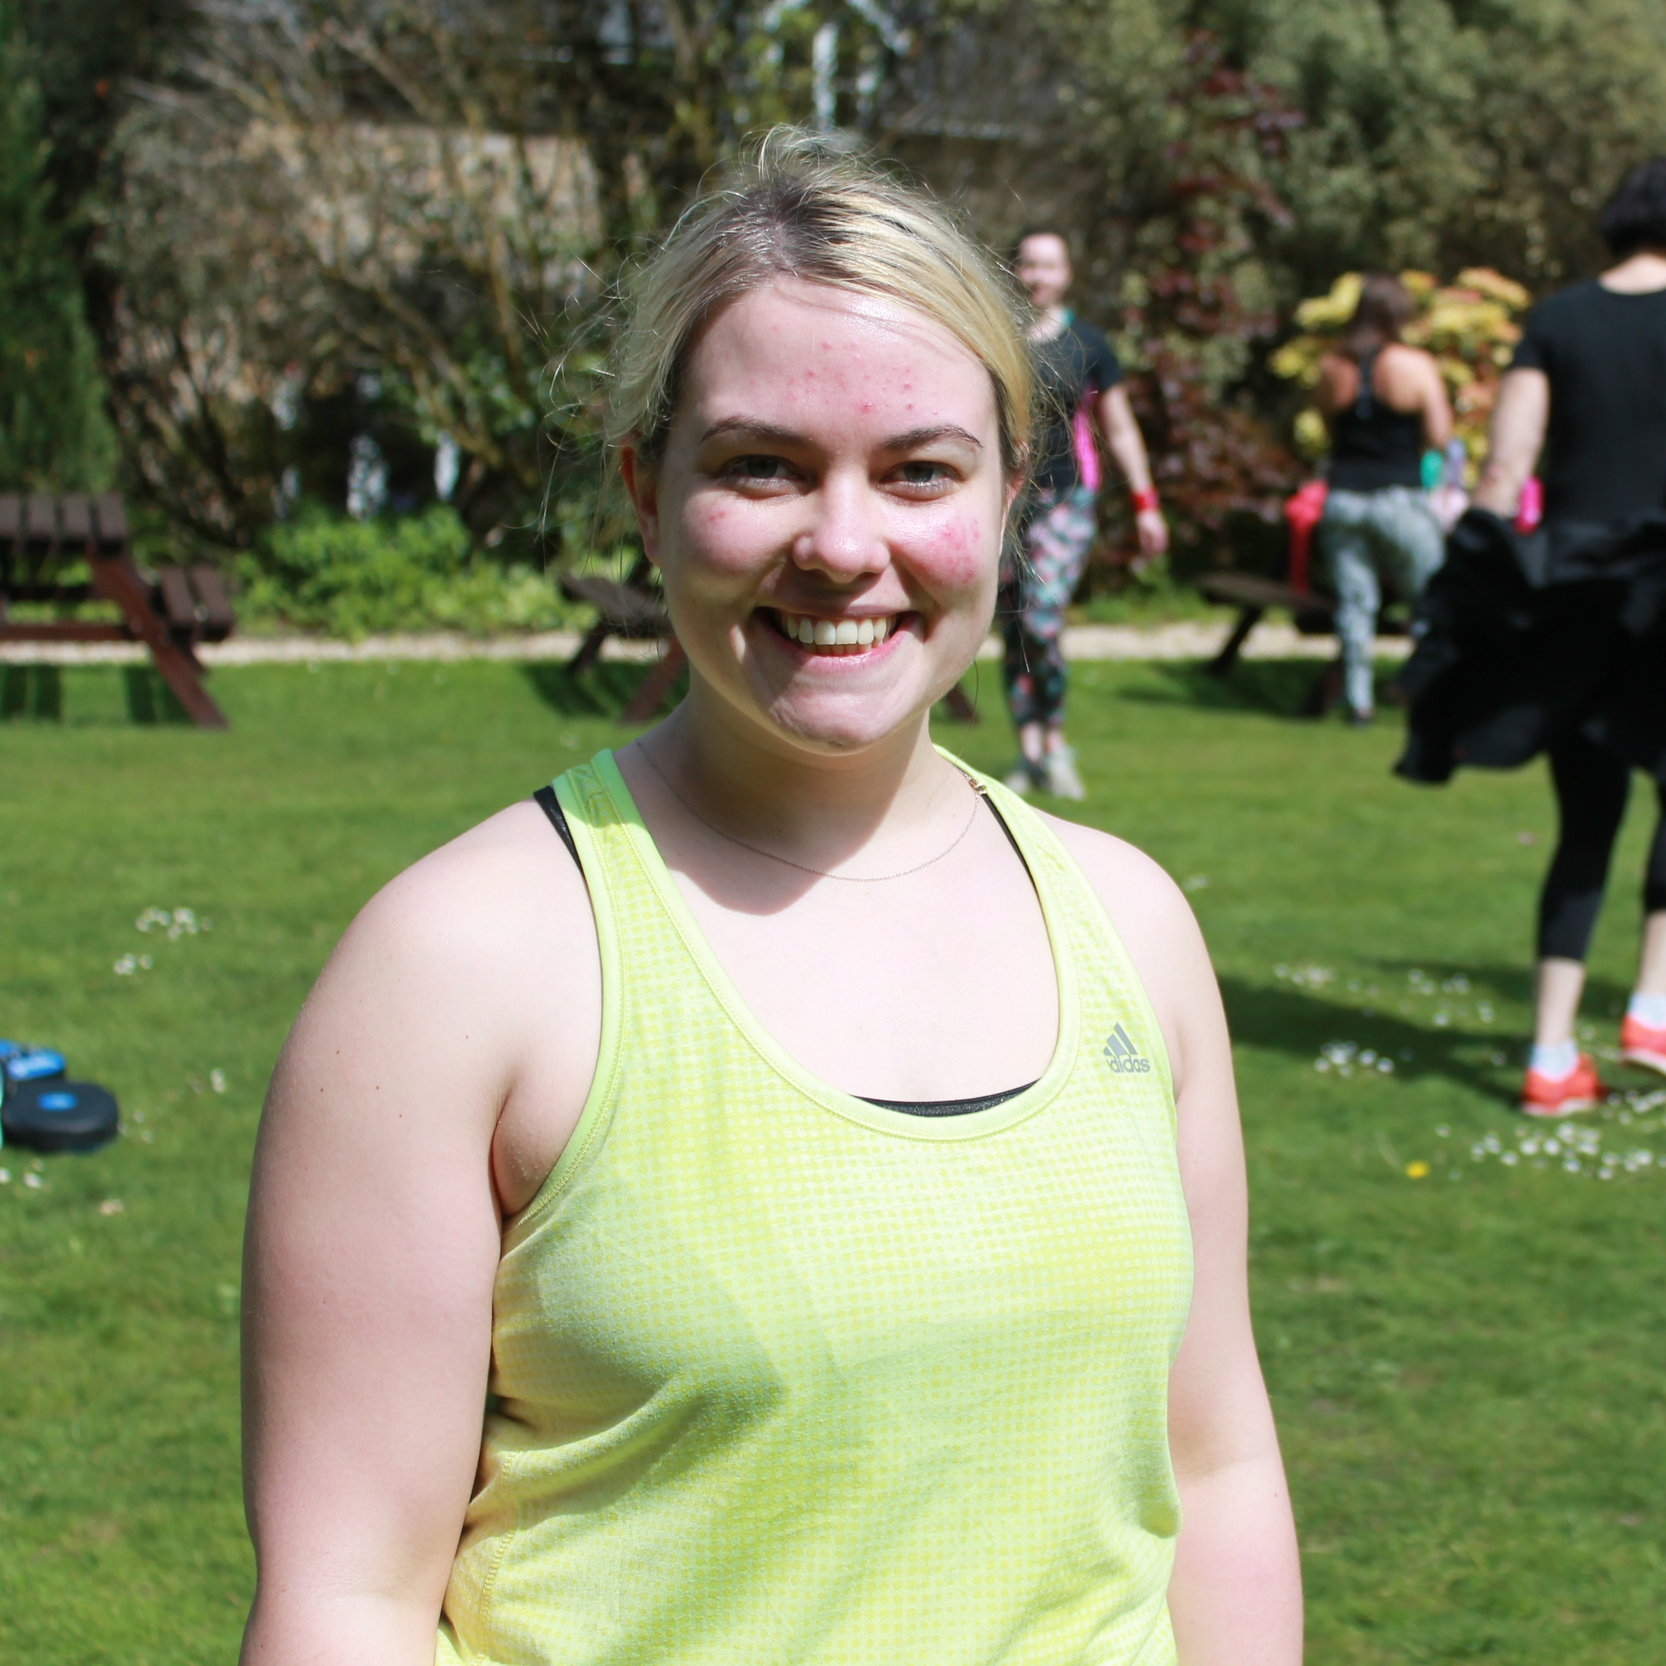 Victoria - Victoria had been on residential boot camps before, but didn't want to give up a whole week to shift unwanted pounds.Vikki came on a 4-day boot camp and lost 4.6lbs (2.1kg)She says: